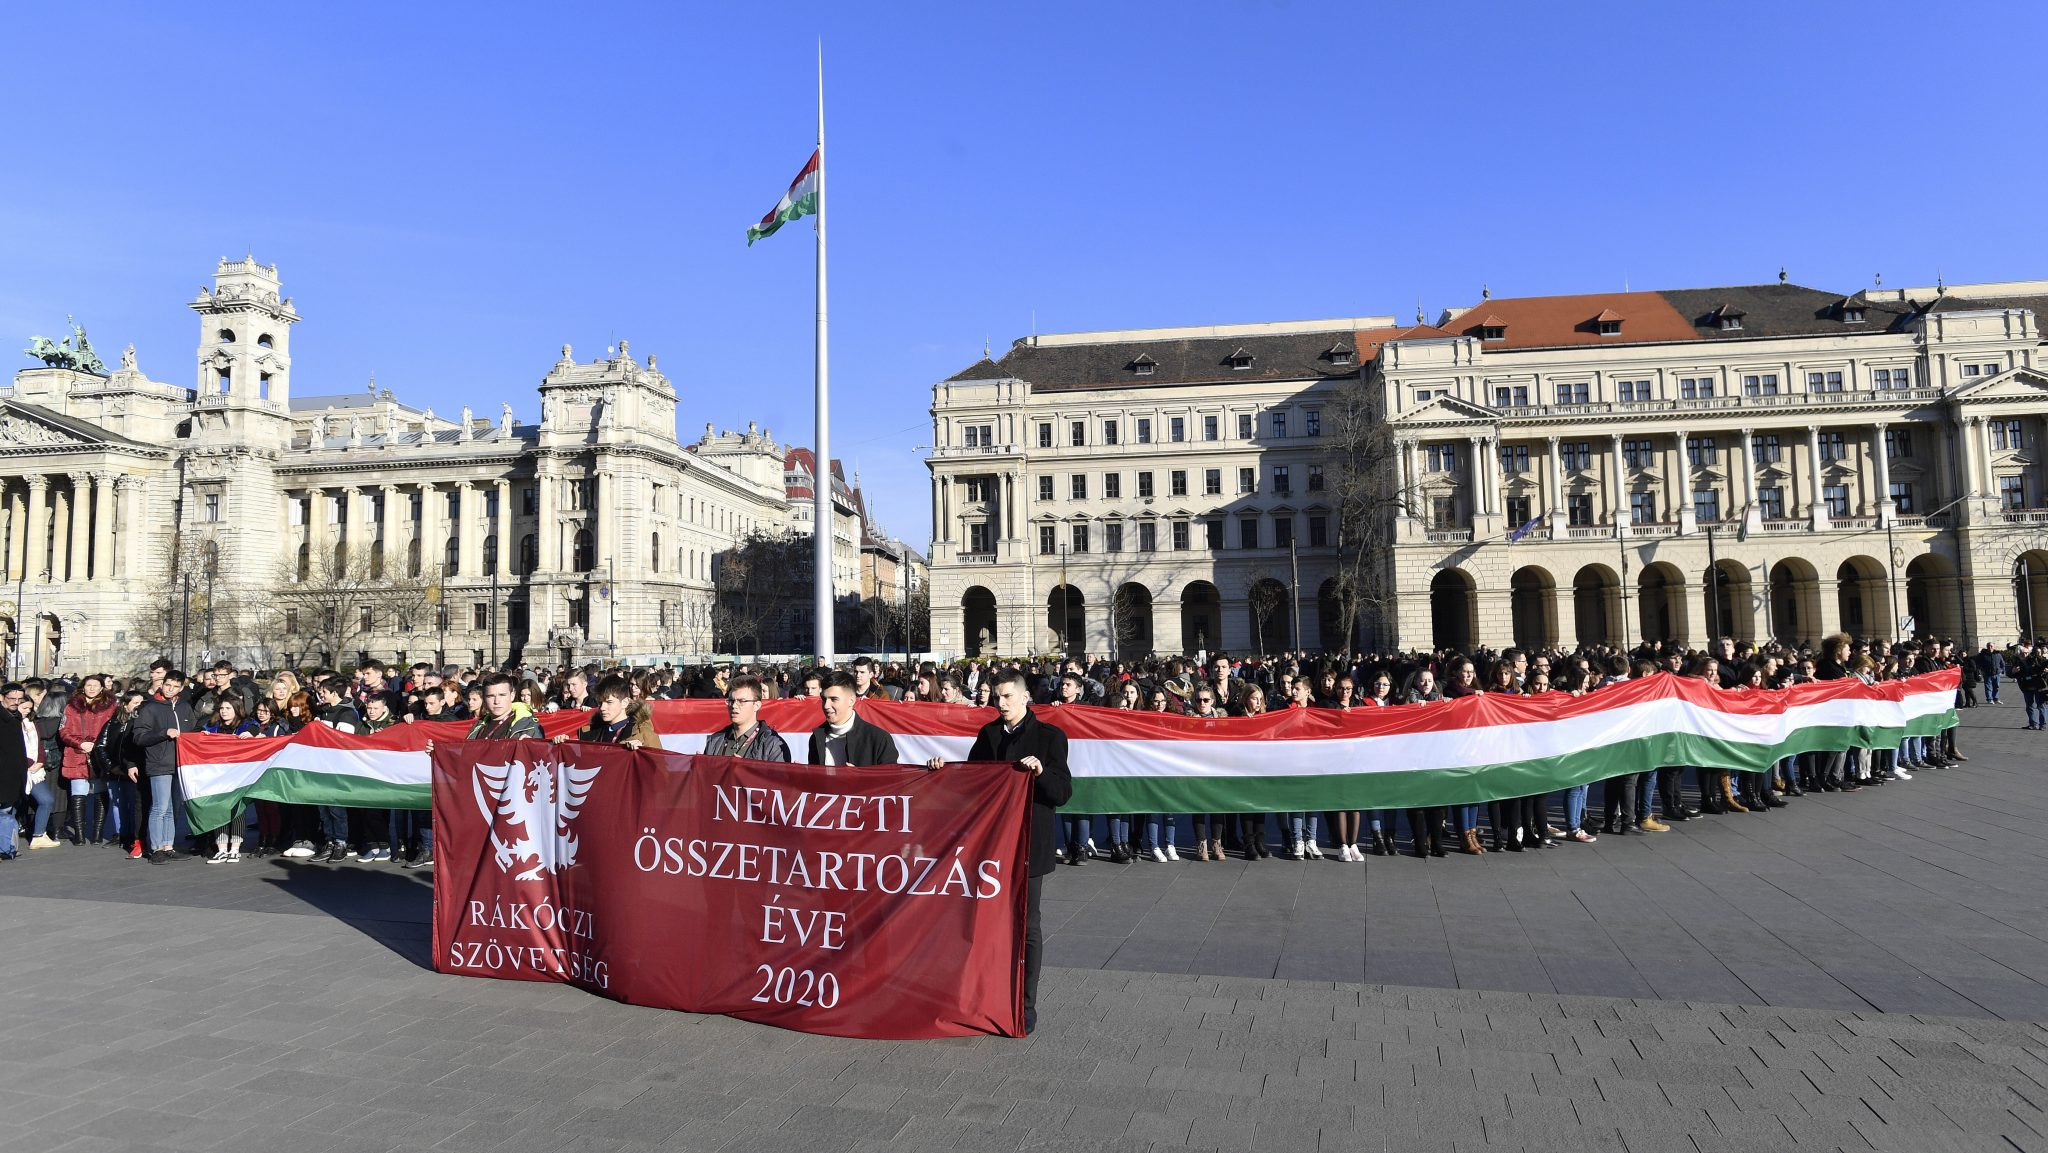 Rákóczi Association Plays Important Role in Helping to Connect Hungarians, says PMO Head post's picture